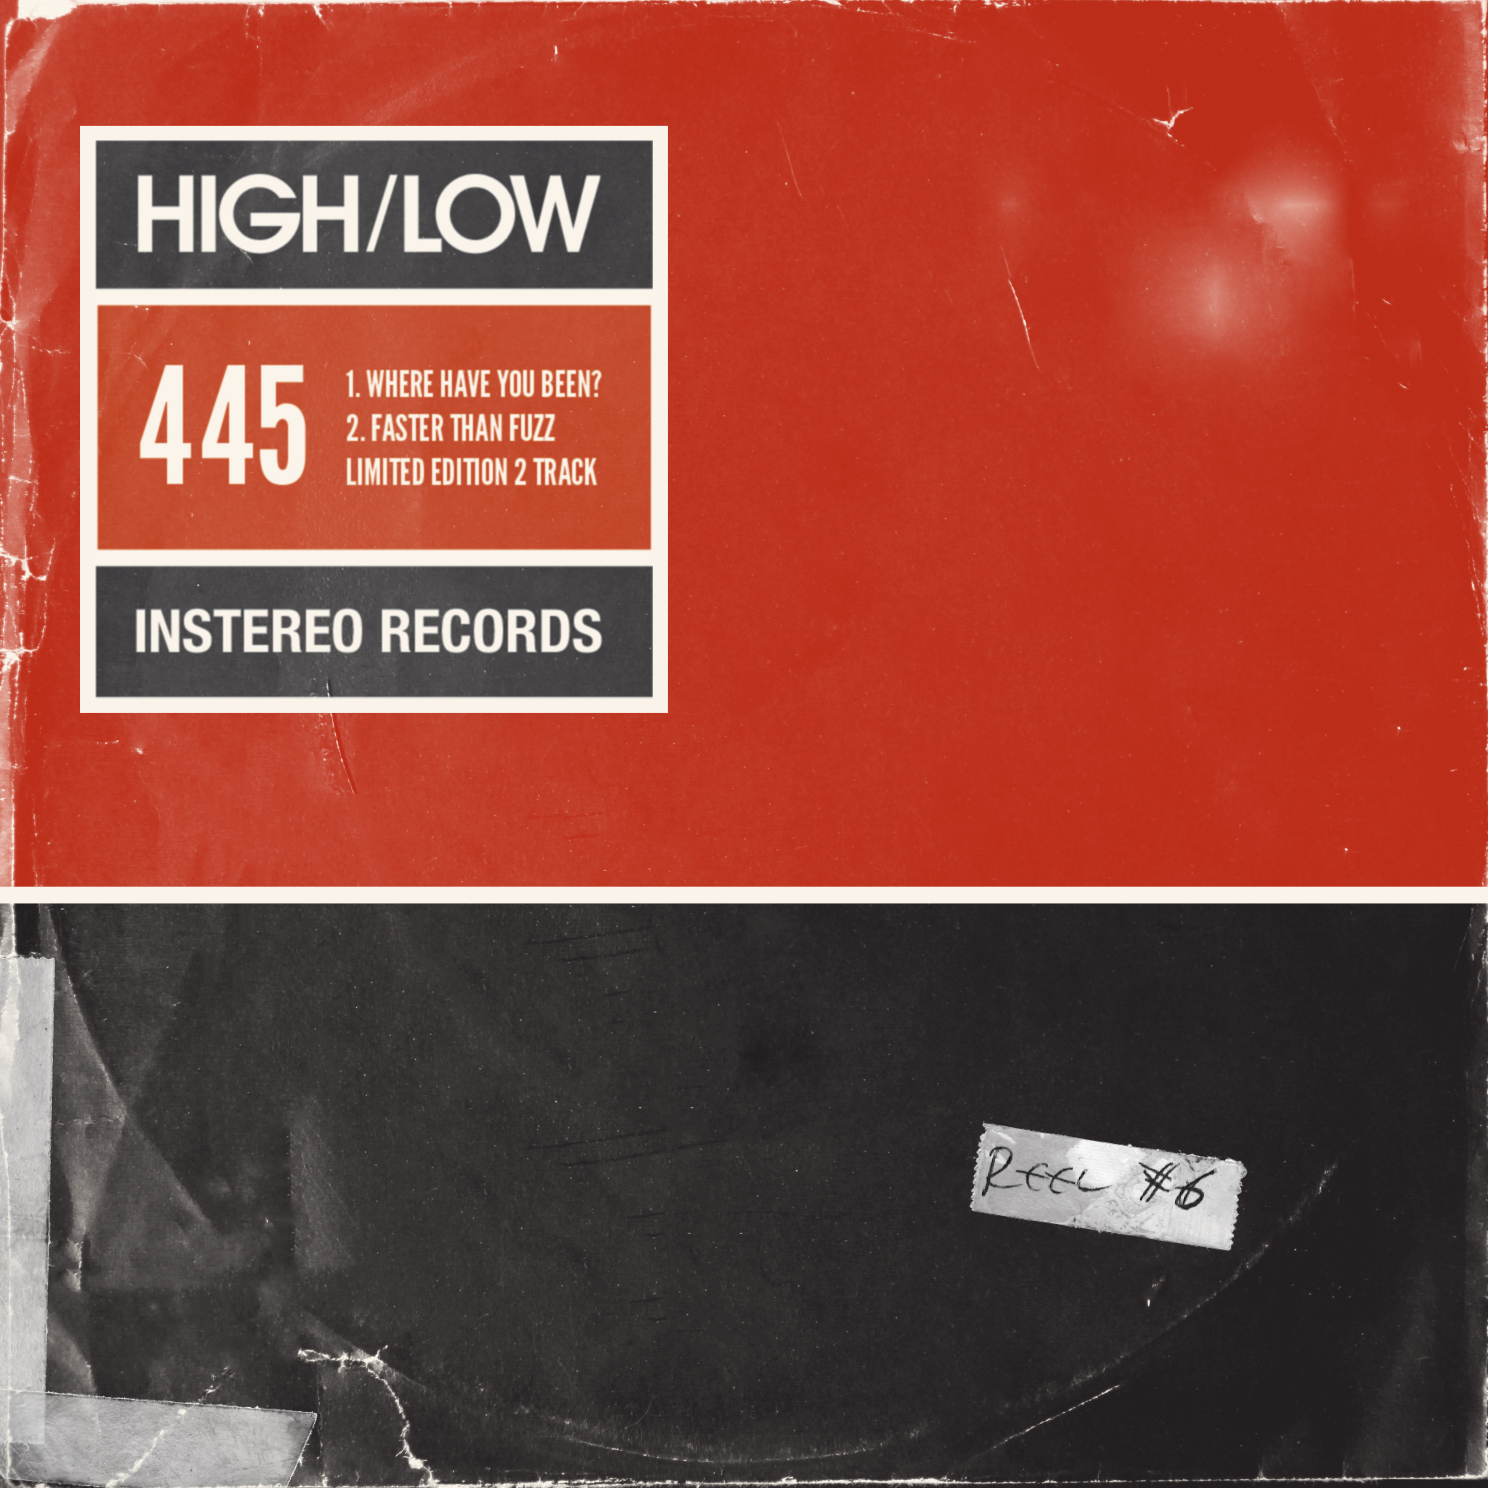 highlow-reel6-front-cover-web